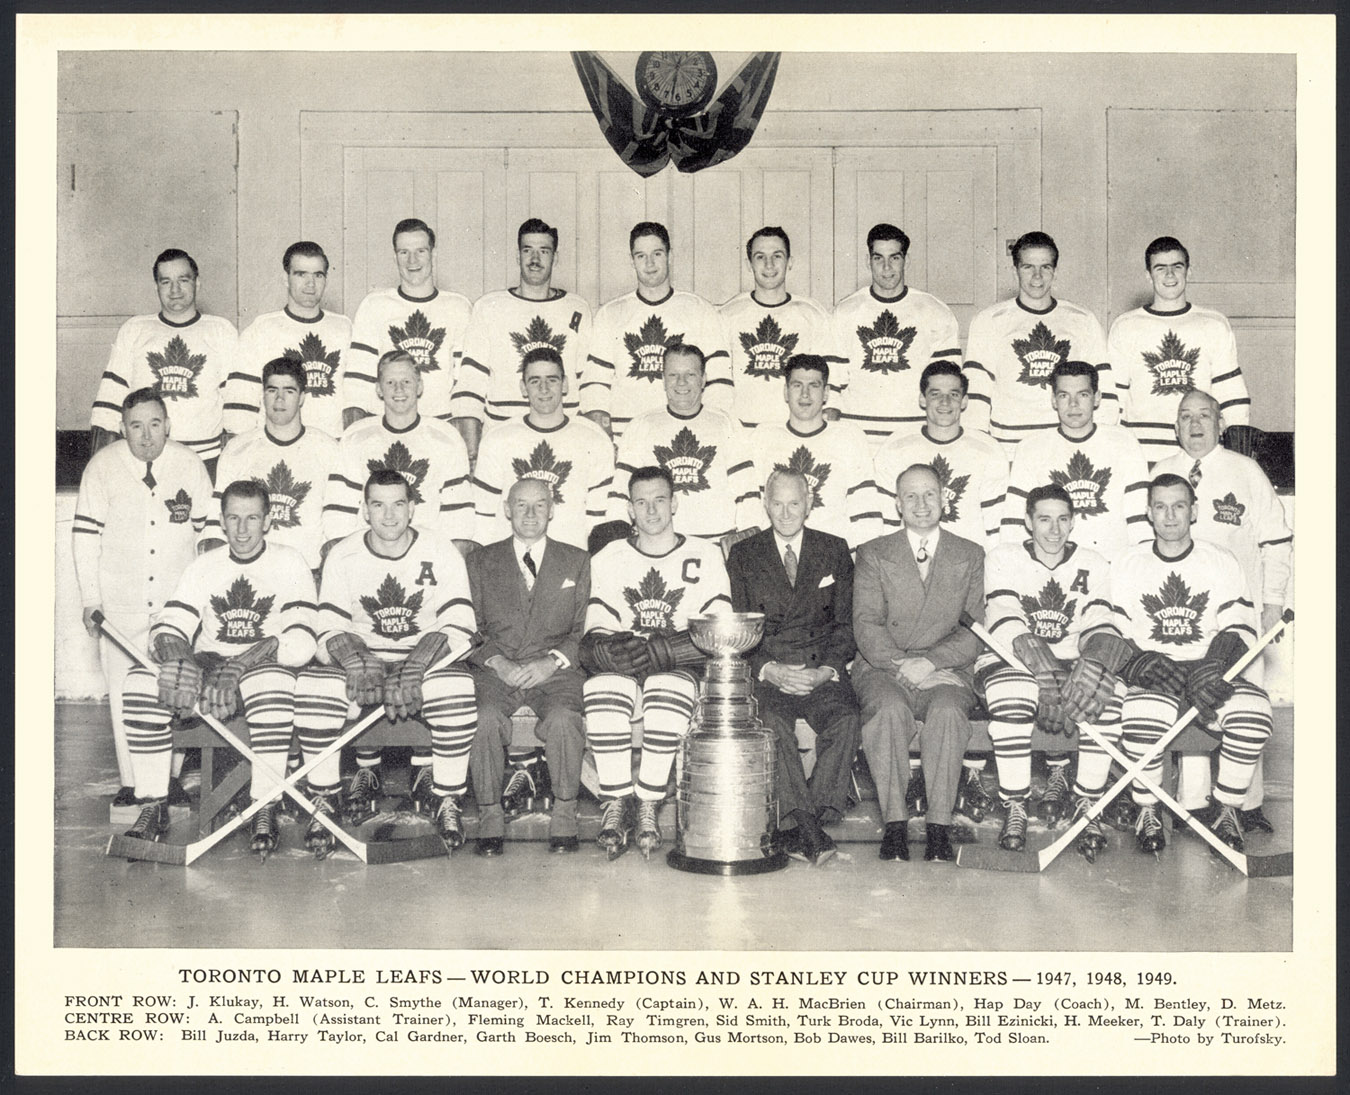 1948 49 Toronto Maple Leafs Quaker Oats Photo Phenomenal Condition Ebay